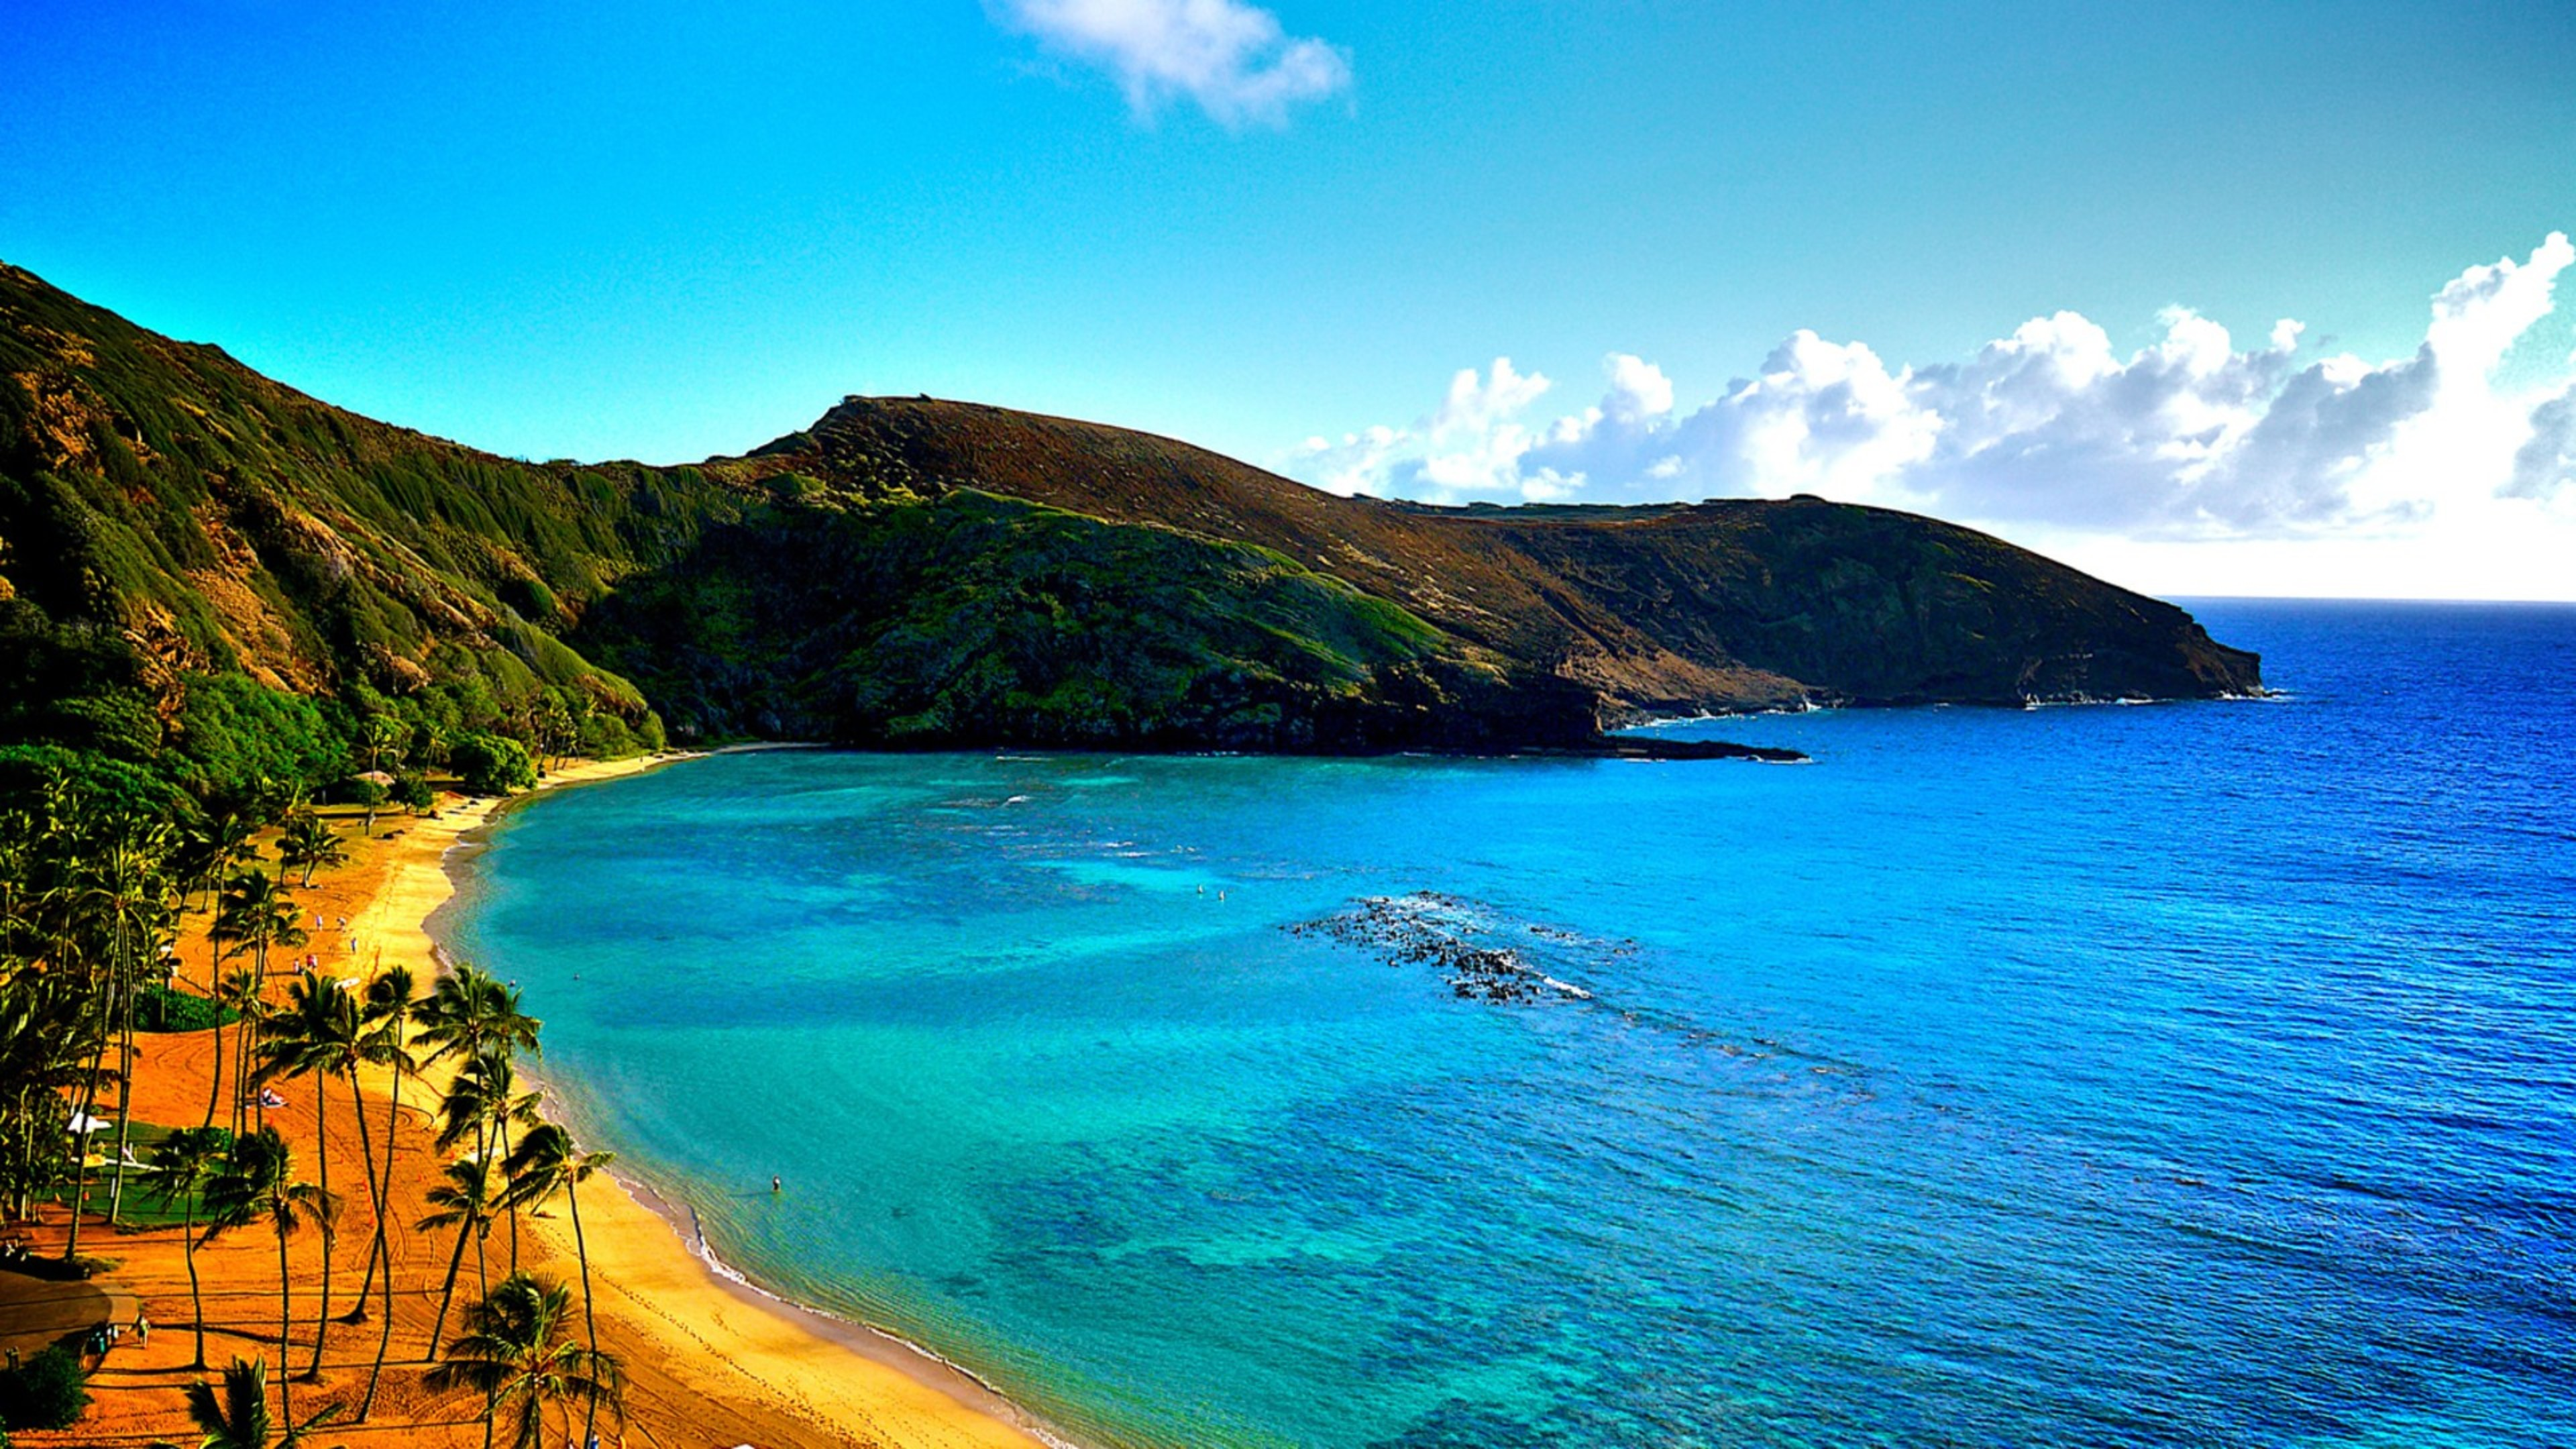 Hawaii Wallpapers Hd: Coast Of Hawaii, HD Nature, 4k Wallpapers, Images